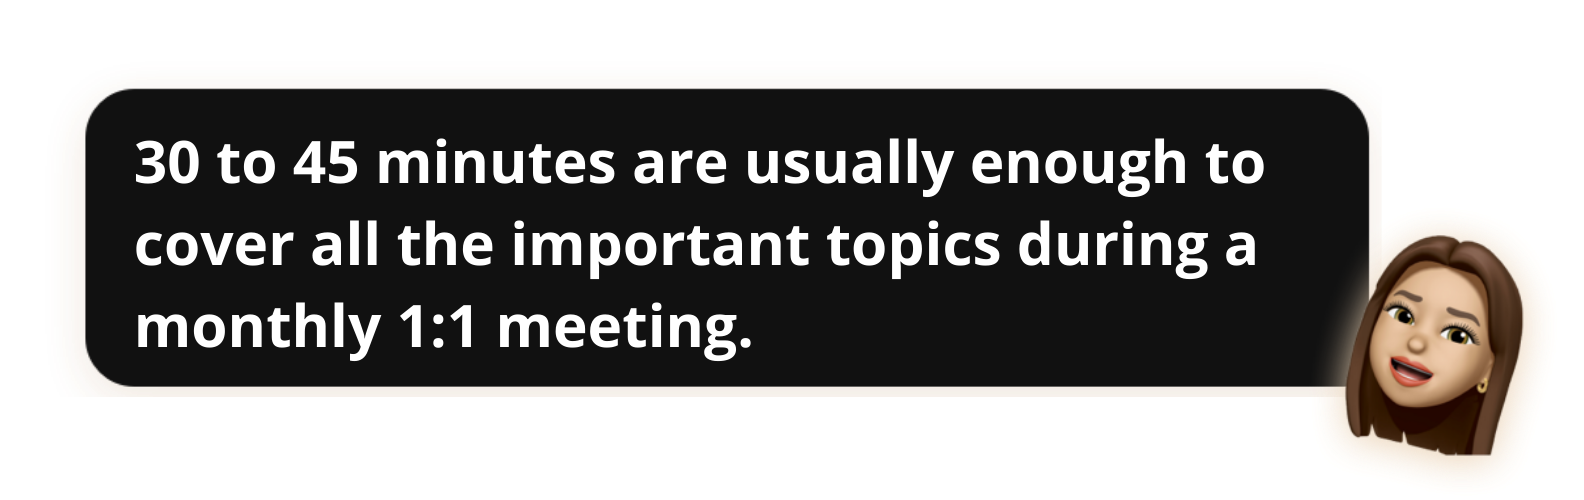 30 to 45 minutes are usually enough to cover all the important topics during a monthly 1:1 meeting - Popwork